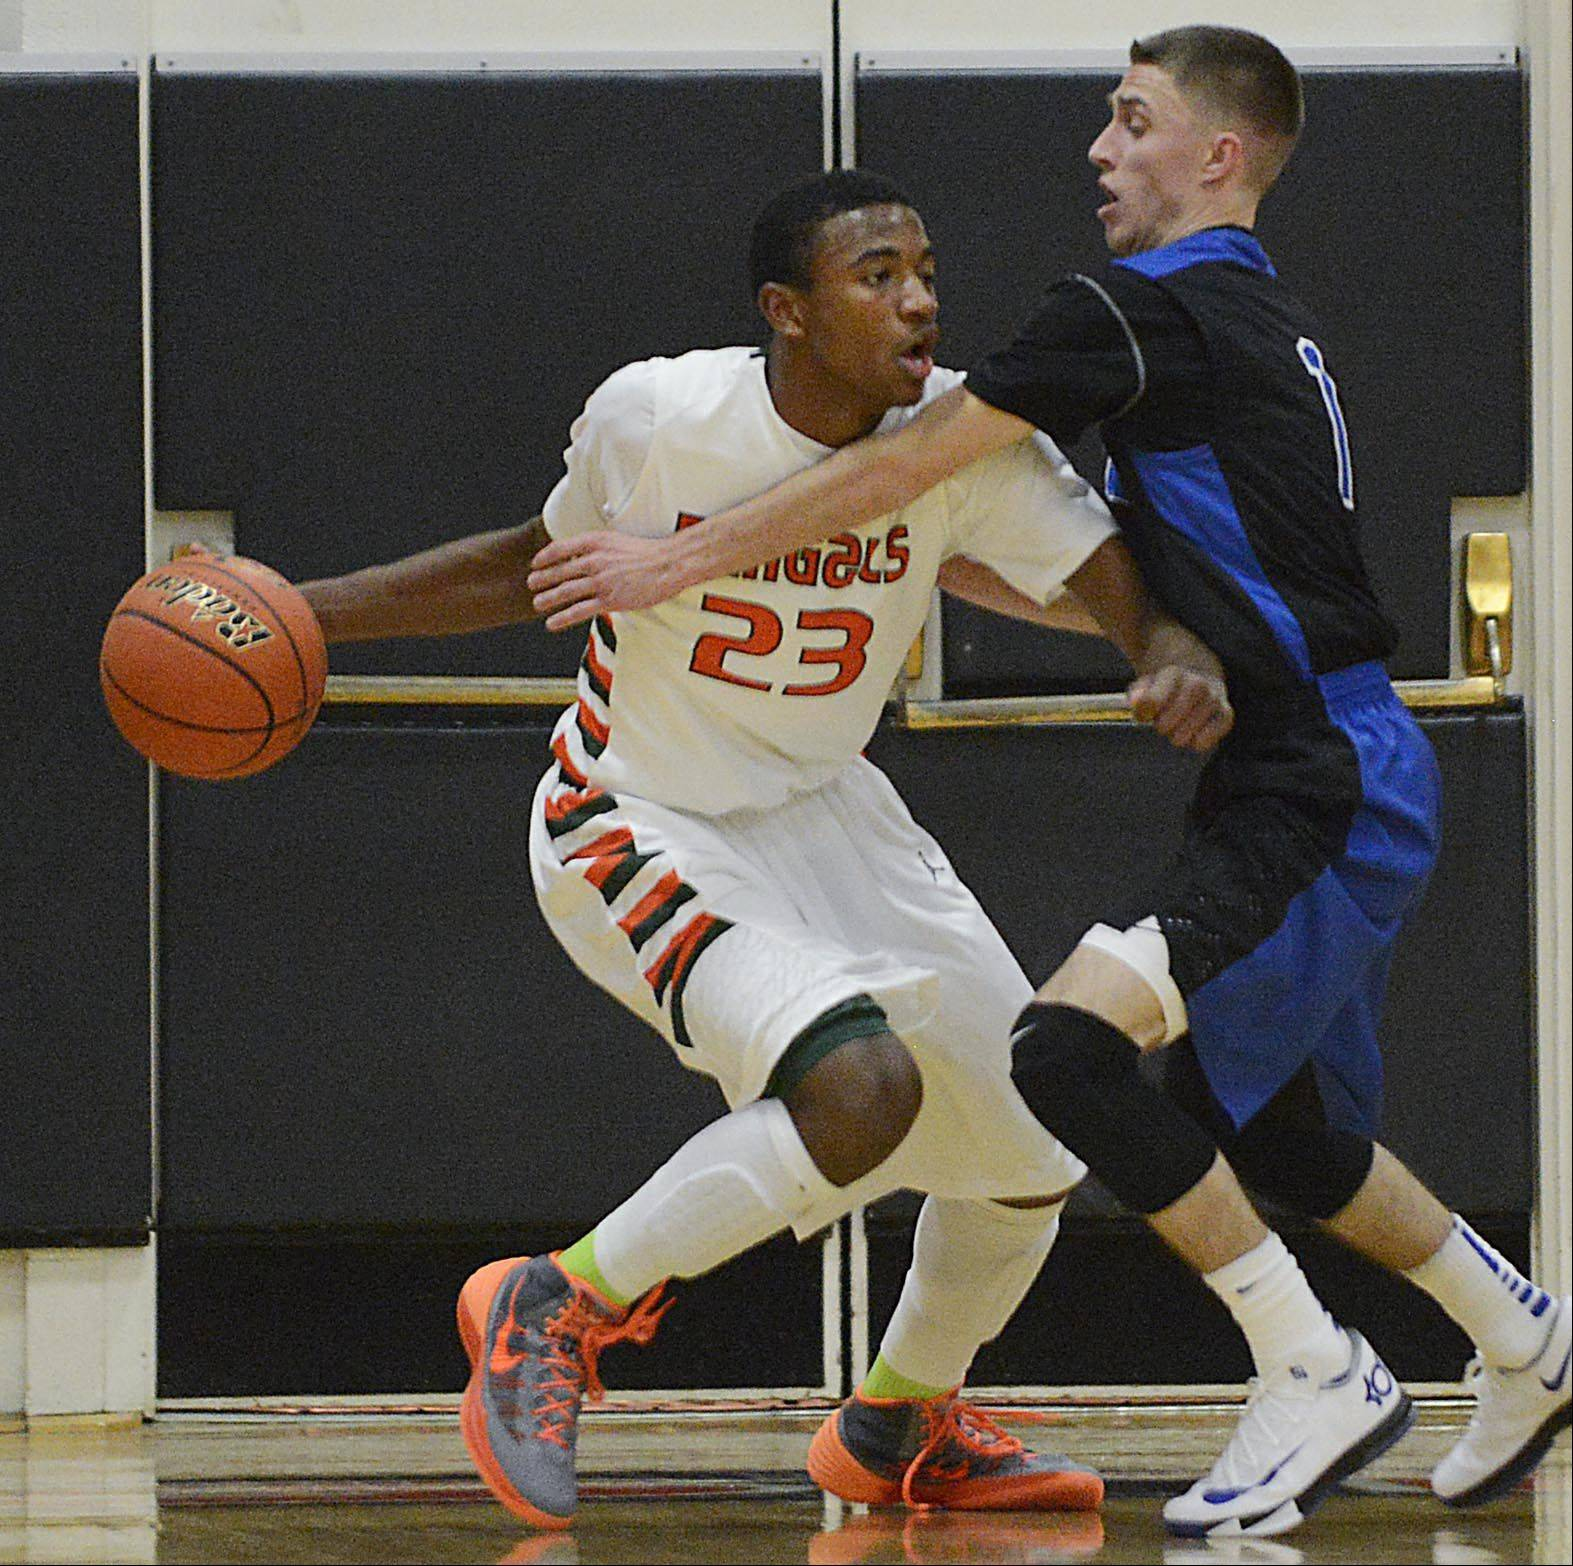 St. Charles North�s Alec Goetz guards Plainfield East�s Aaron Jordan Tuesday in St. Charles.